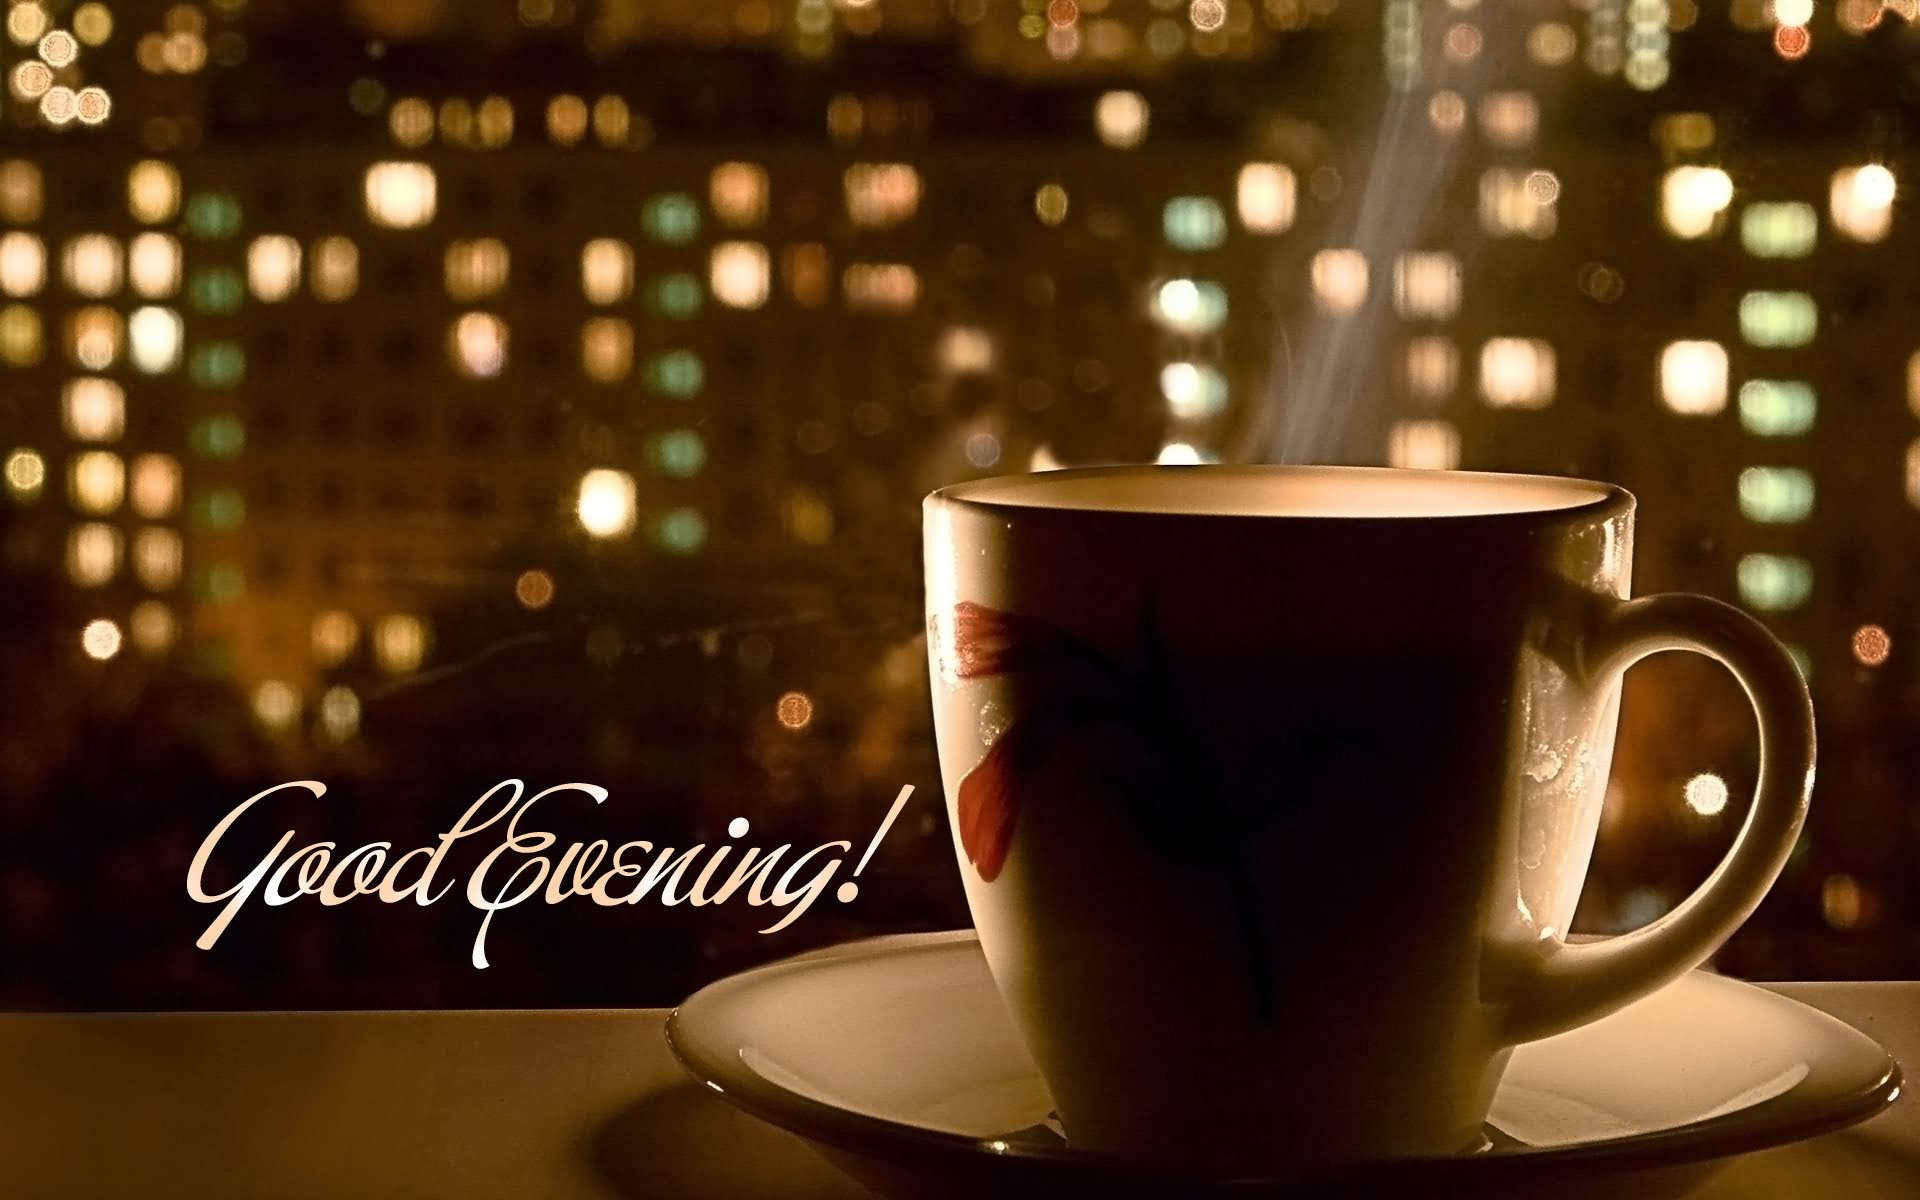 Incredible Good Evening Hot Tea Cup Wallpaper